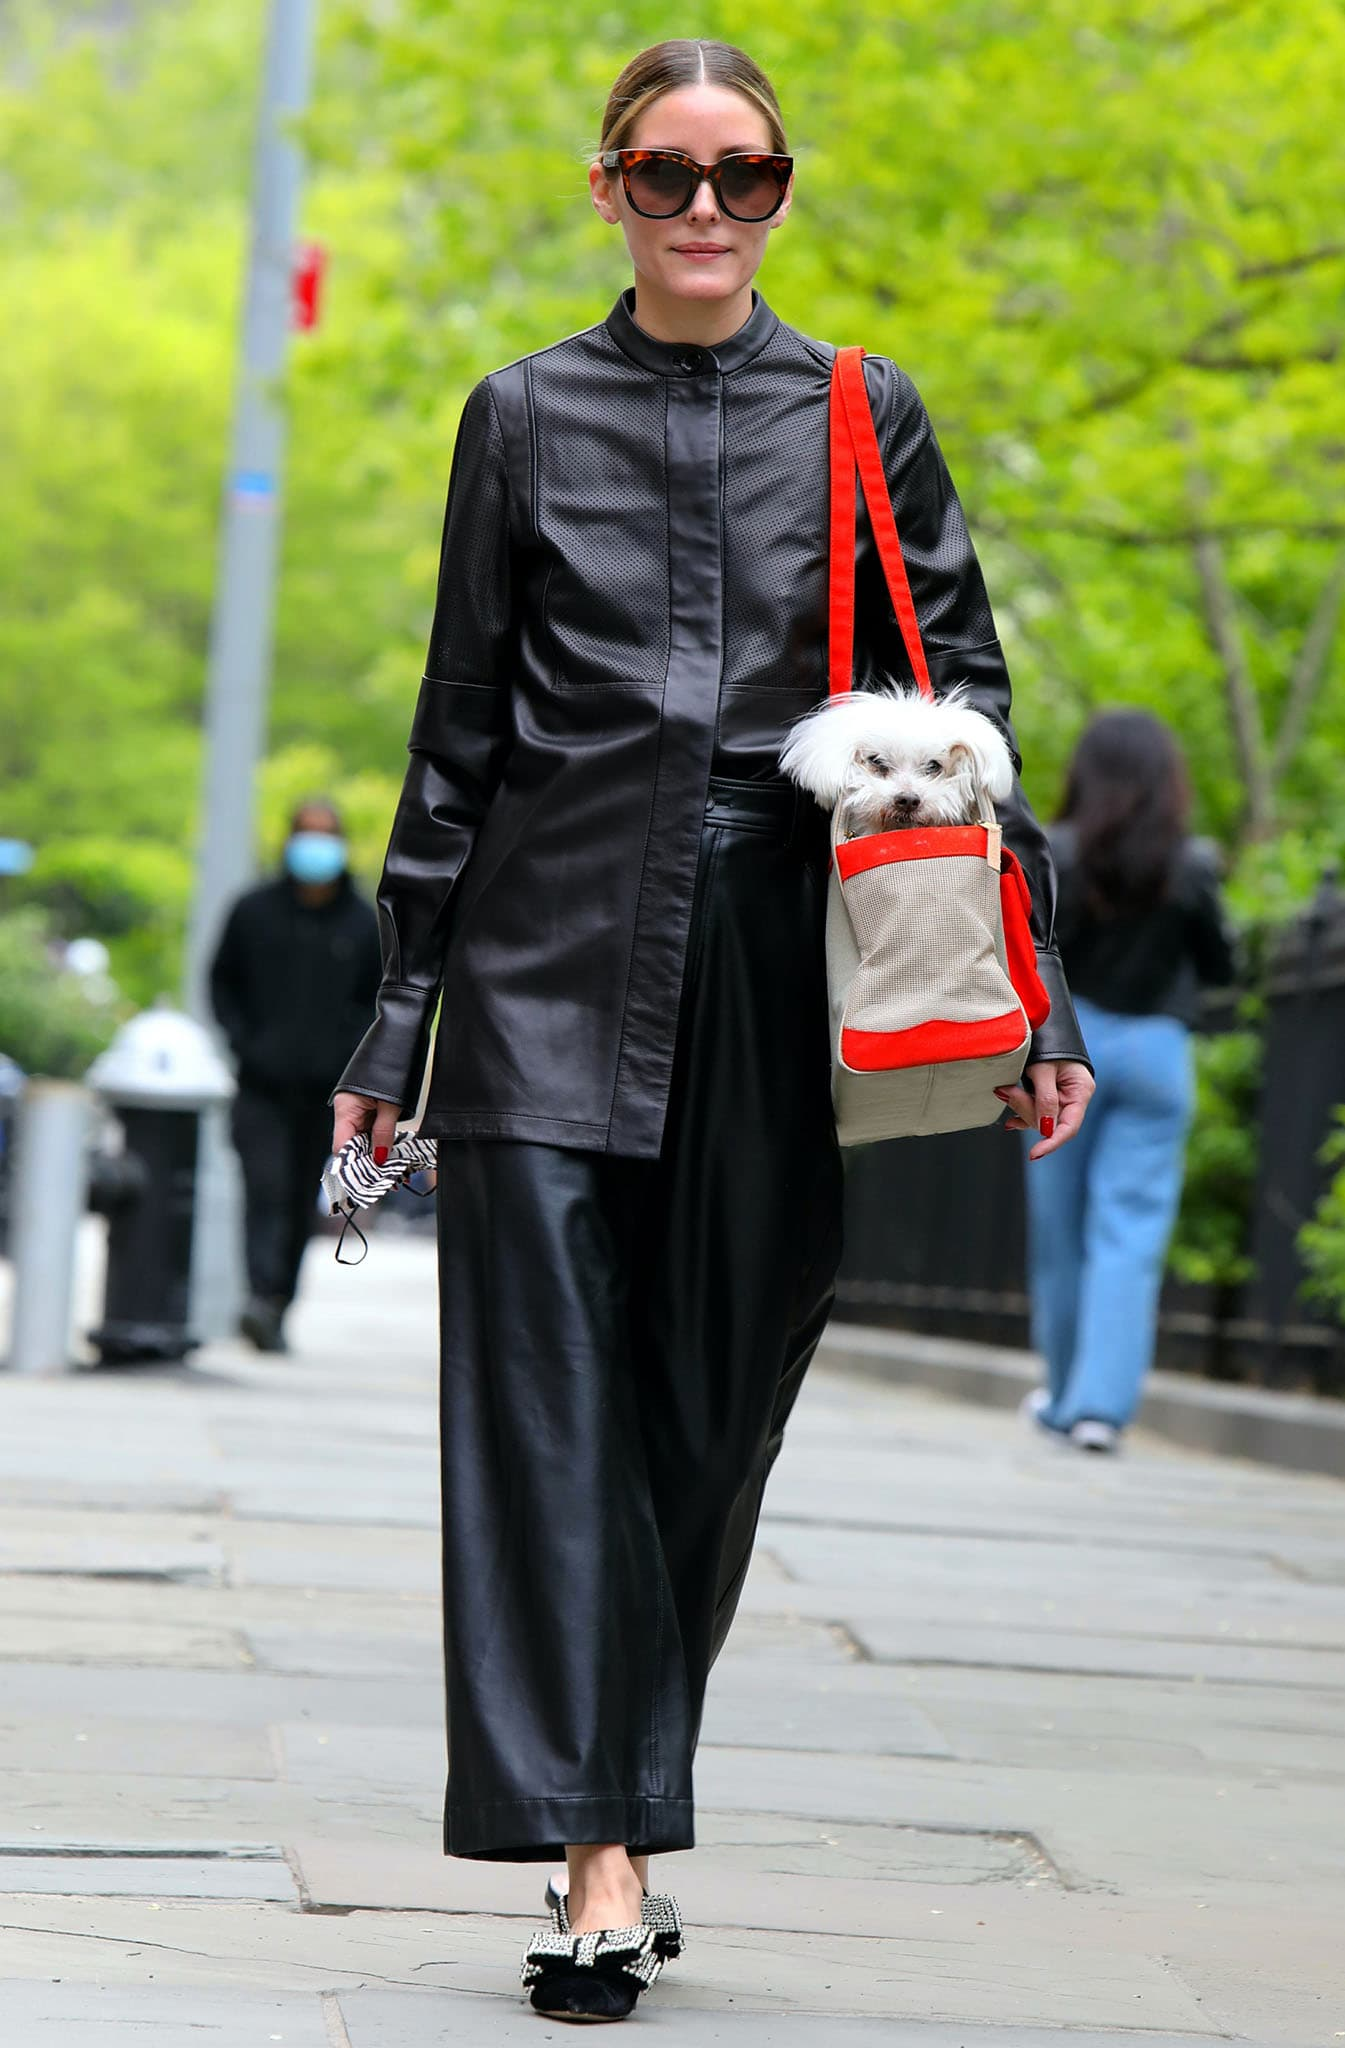 Olivia Palermo goes head-to-toe black in her perforated leather tunic and Tibi leather culottes